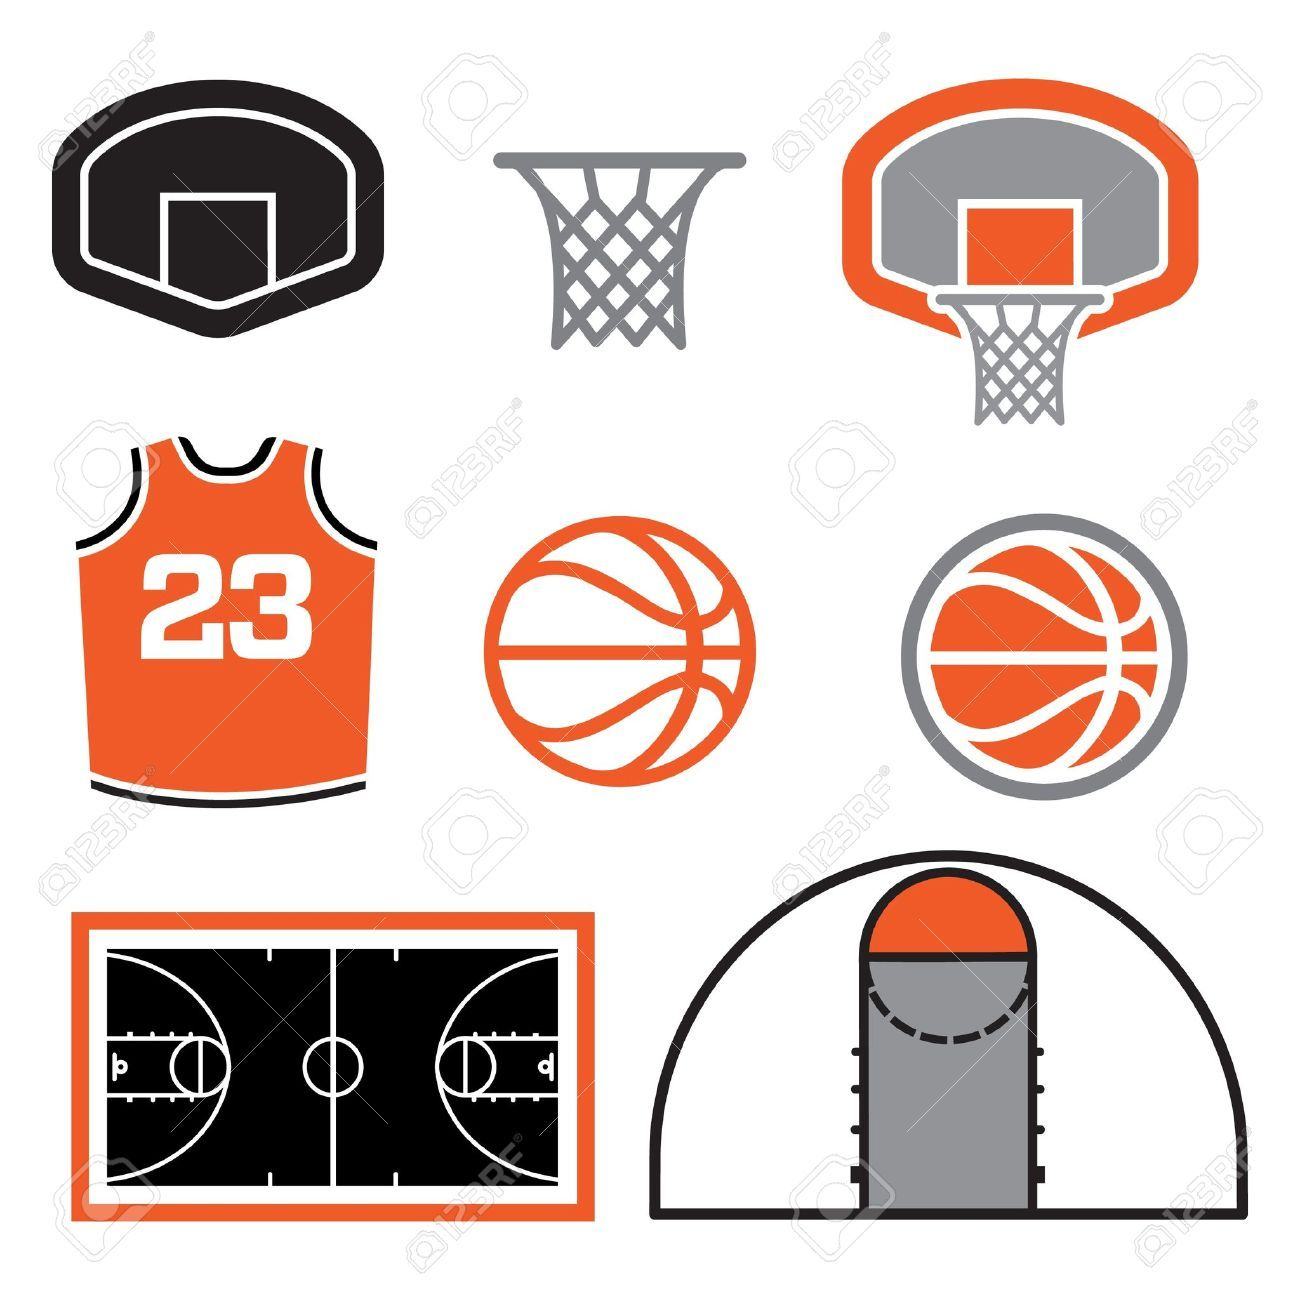 Image result for basketball vector basketball art inspiration image result for basketball vector biocorpaavc Choice Image